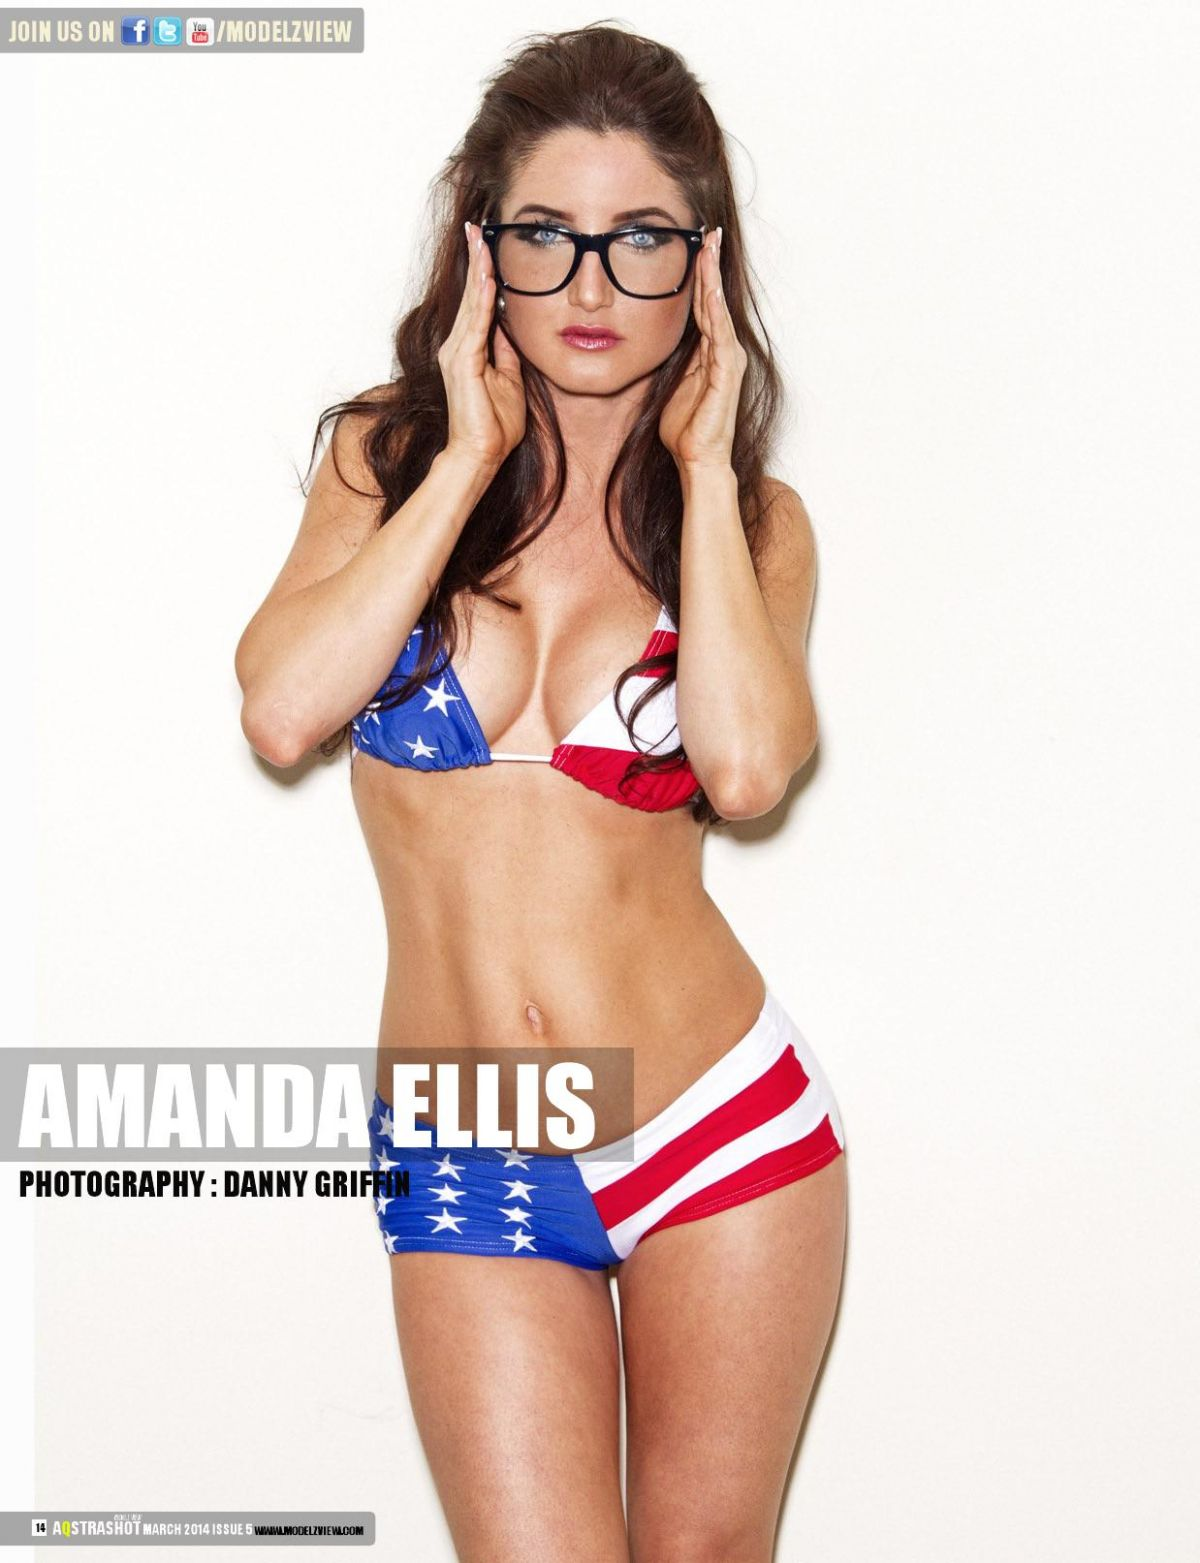 AMANDA ELLIS in Aqstrashot Magazine, March 2014 Issue